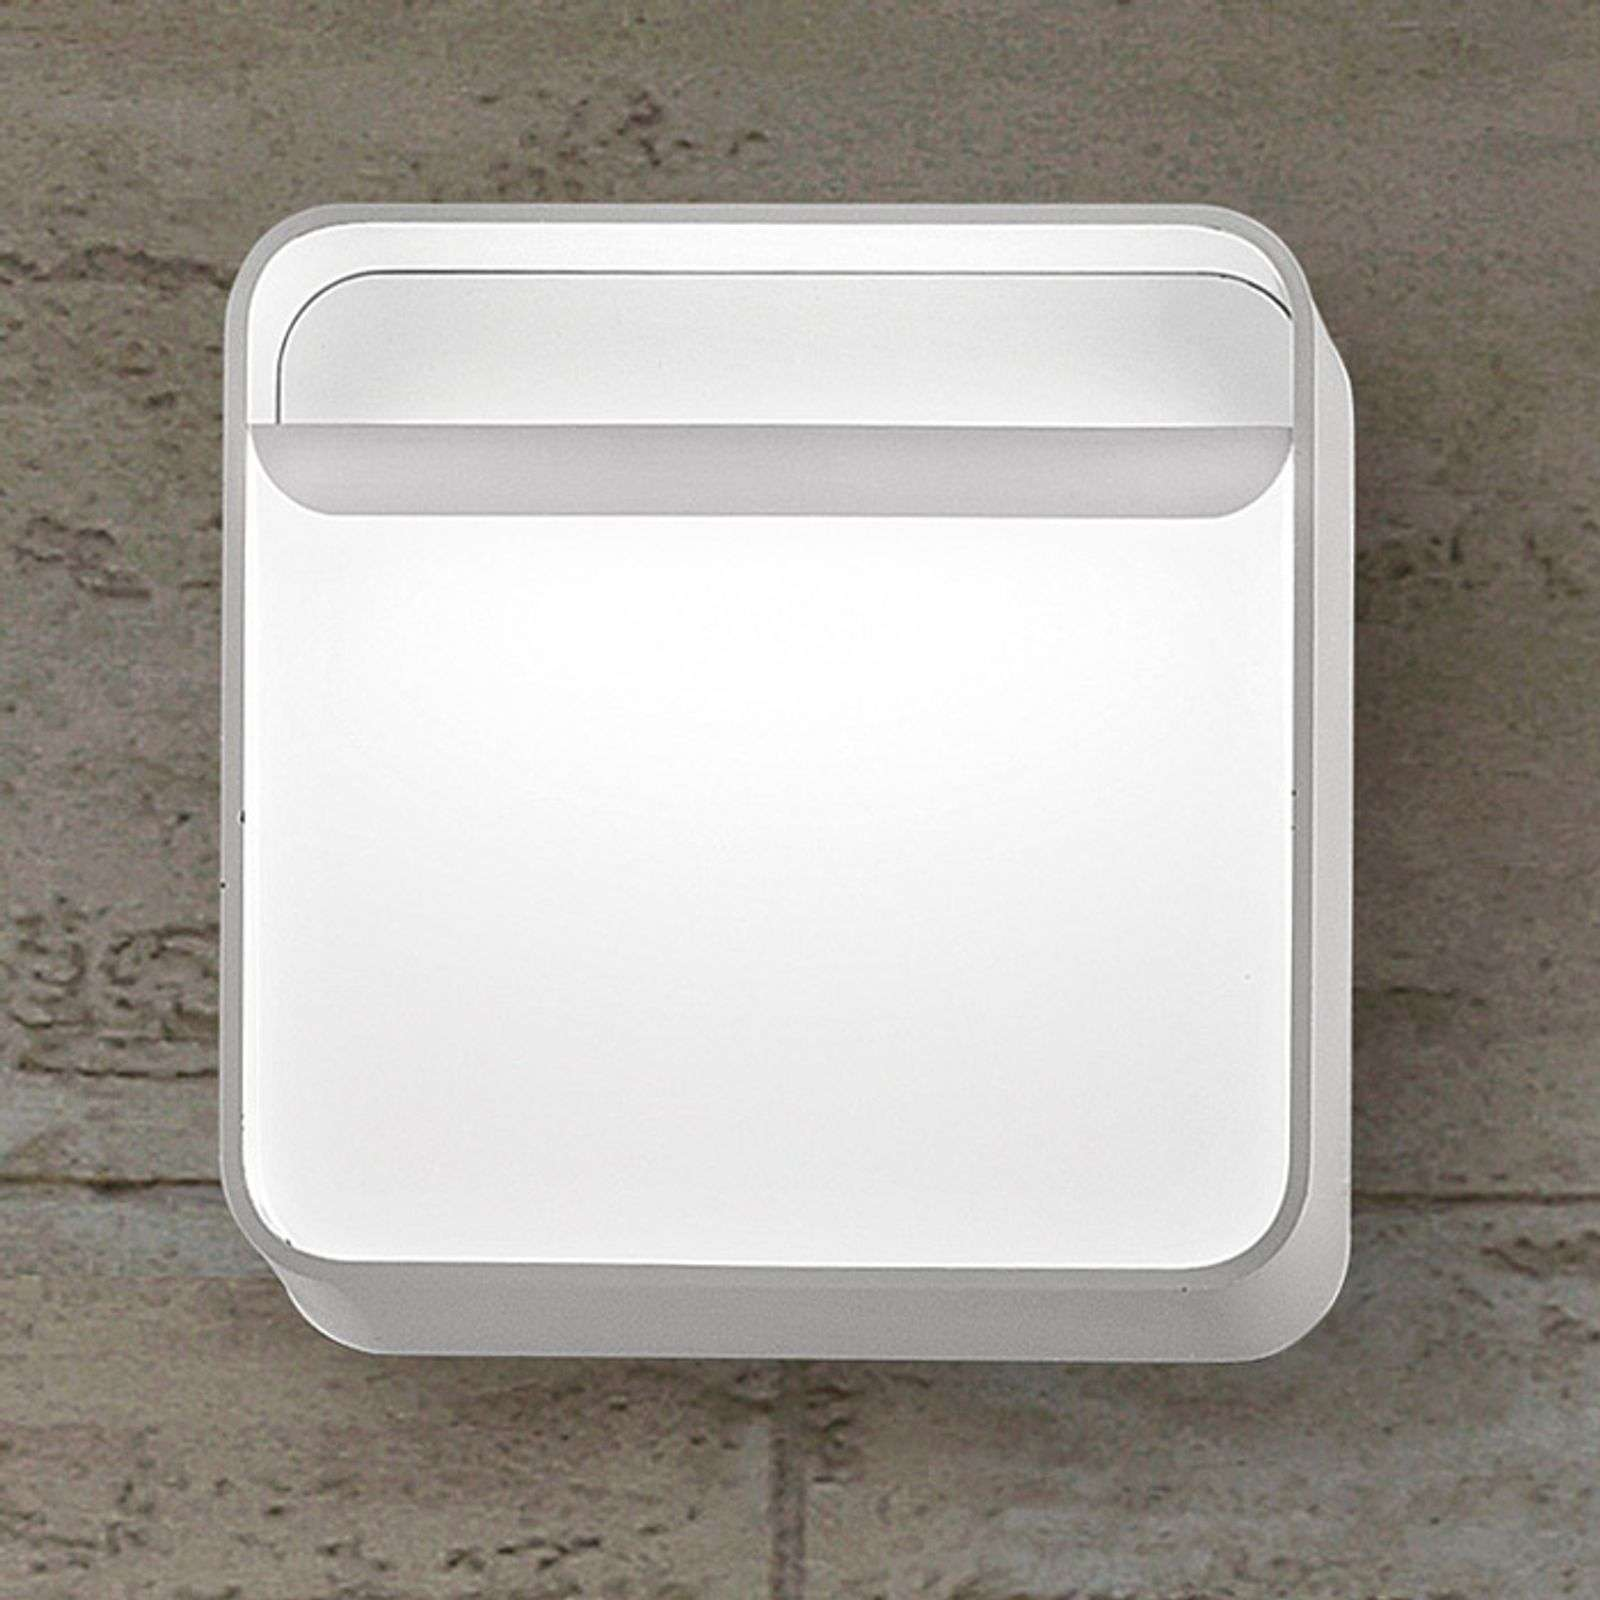 Decorativa lámpara de pared LED Metafora A/P 19